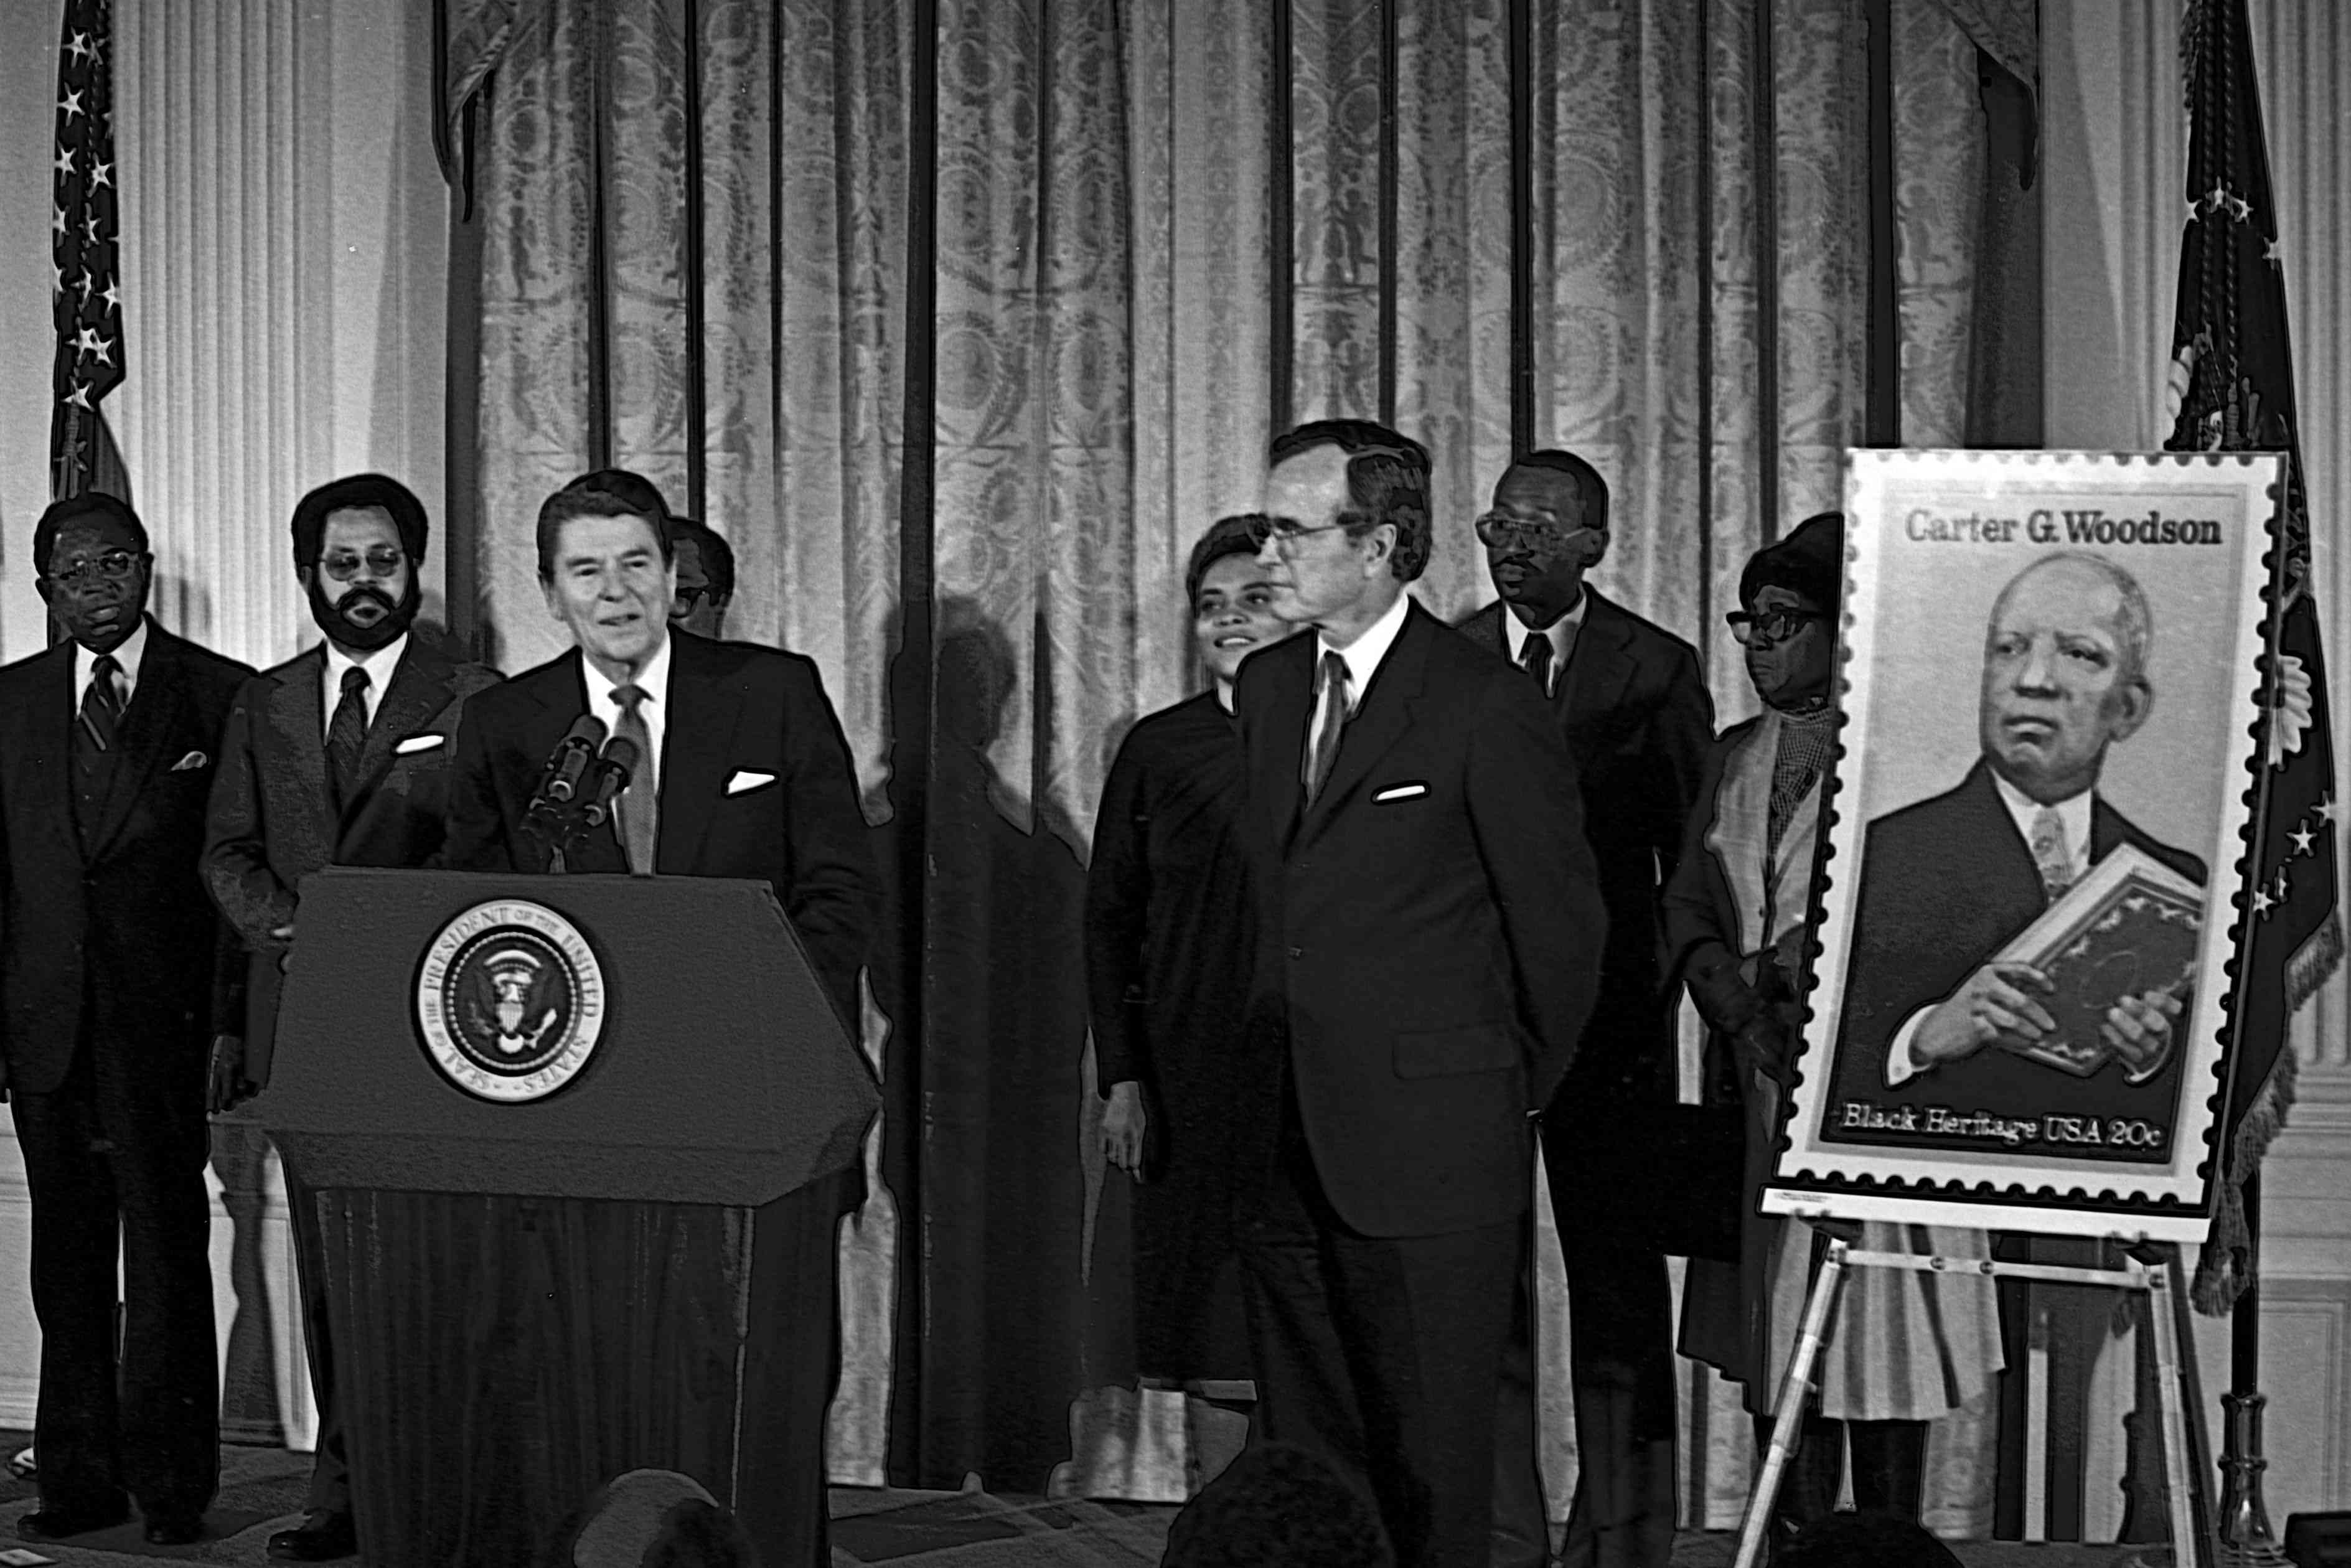 President Reagan speaking to a crowd with new Carter G. Woodson stamp off to the side